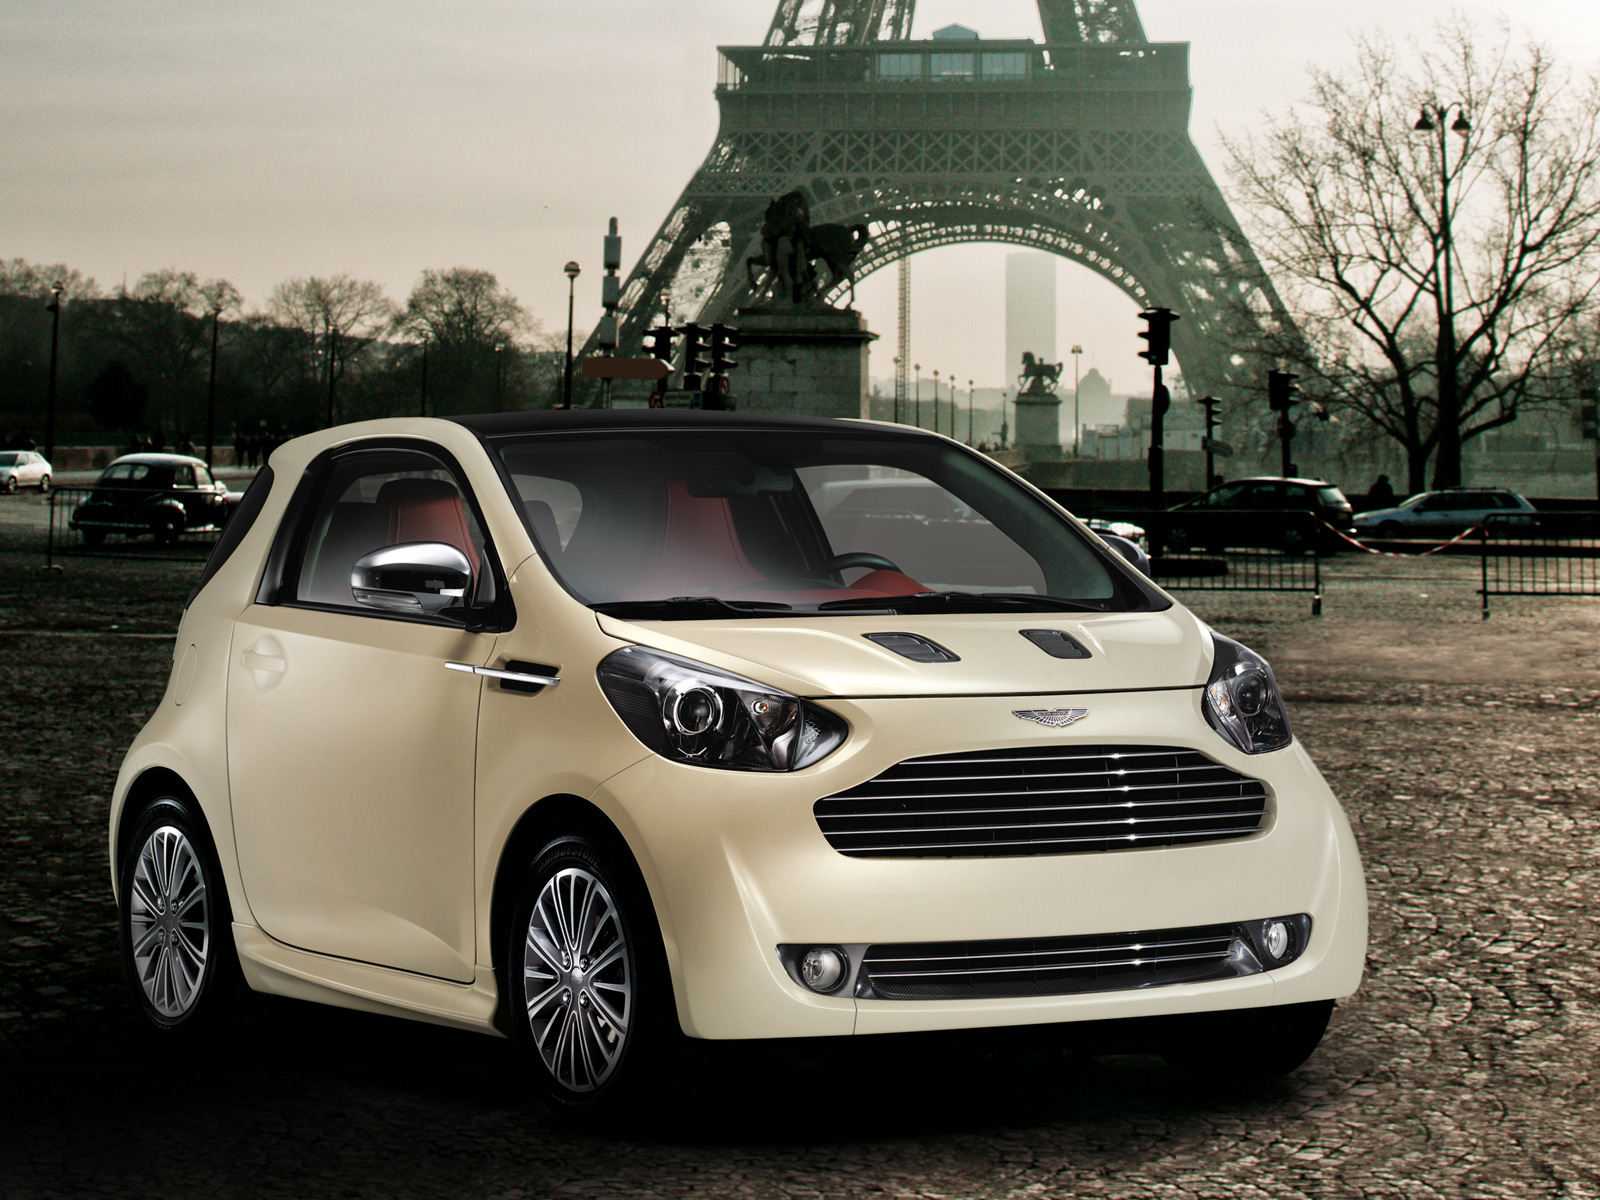 aston martin cygnet luxury subcompact to be available. Black Bedroom Furniture Sets. Home Design Ideas